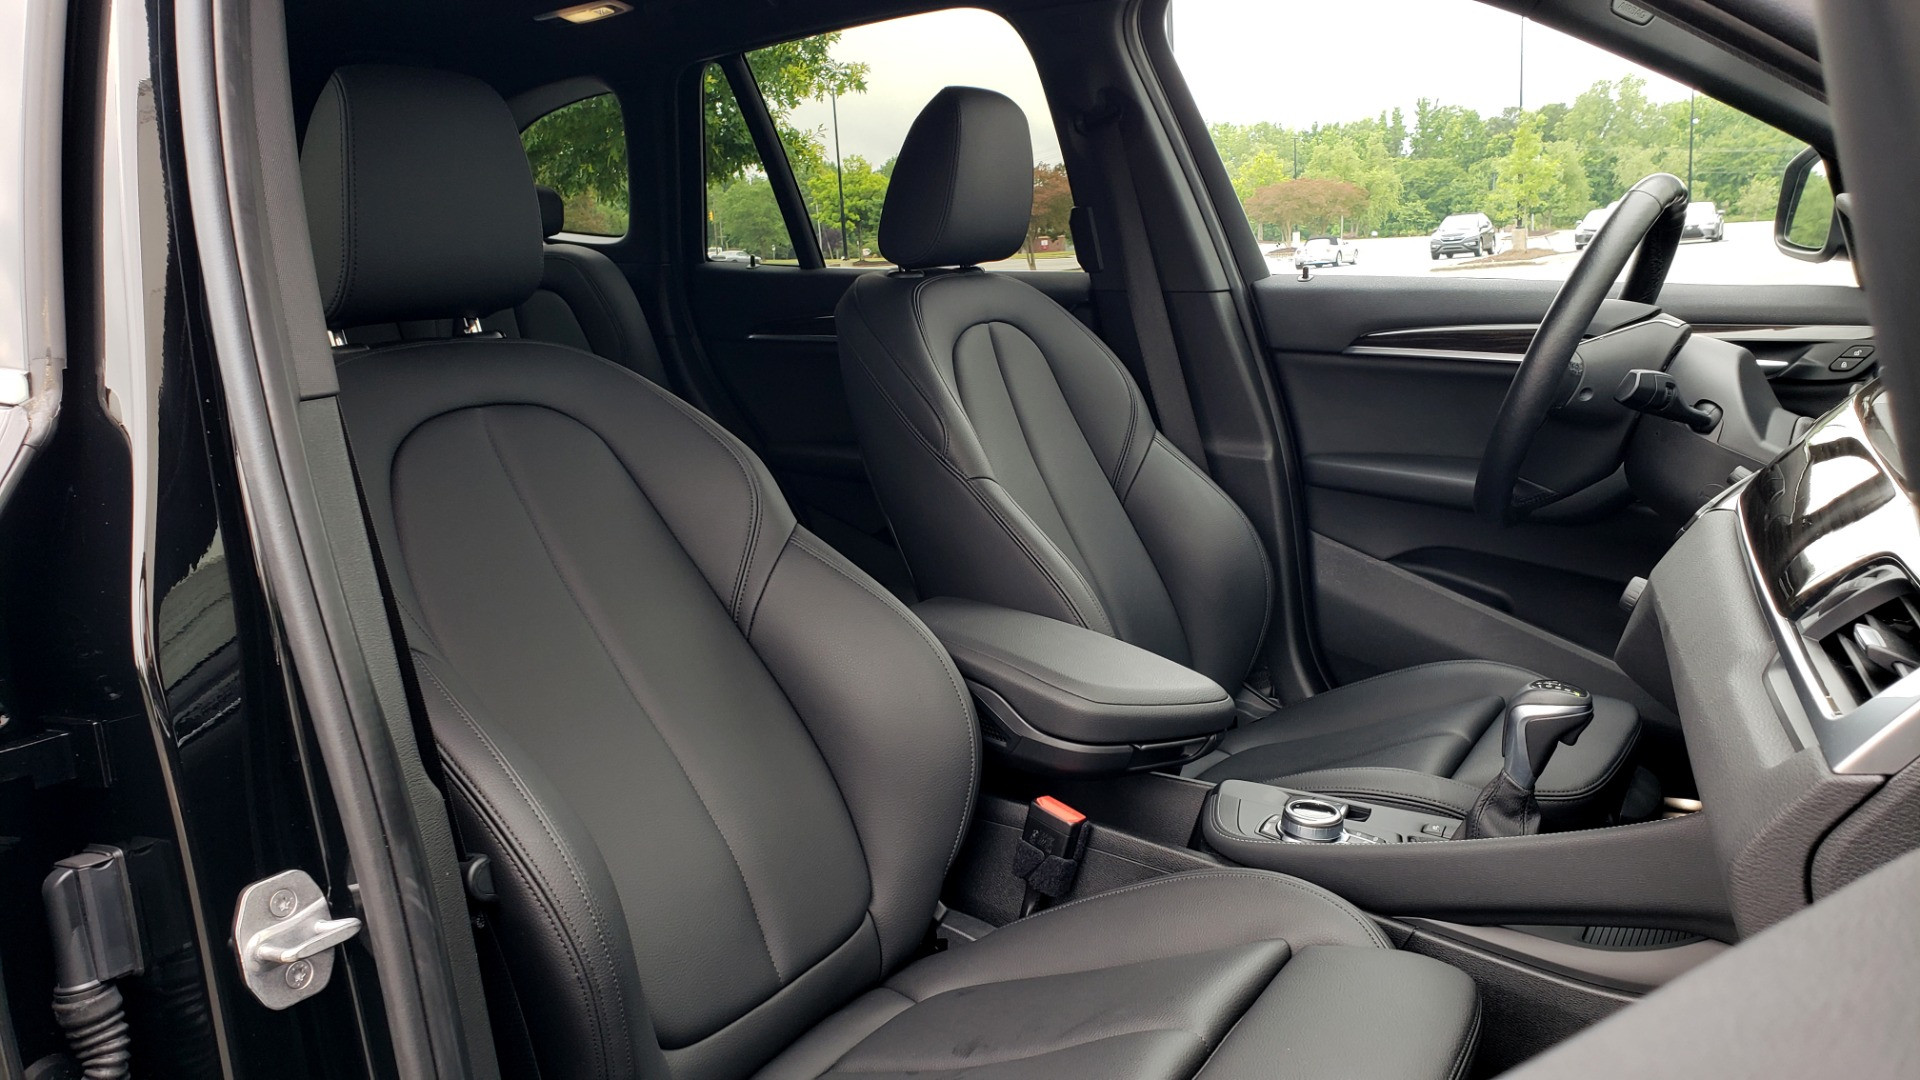 Used 2018 BMW X1 XDRIVE28I / CONV PKG / NAV / HTD STS / PANO-ROOF / REARVIEW for sale $30,995 at Formula Imports in Charlotte NC 28227 69